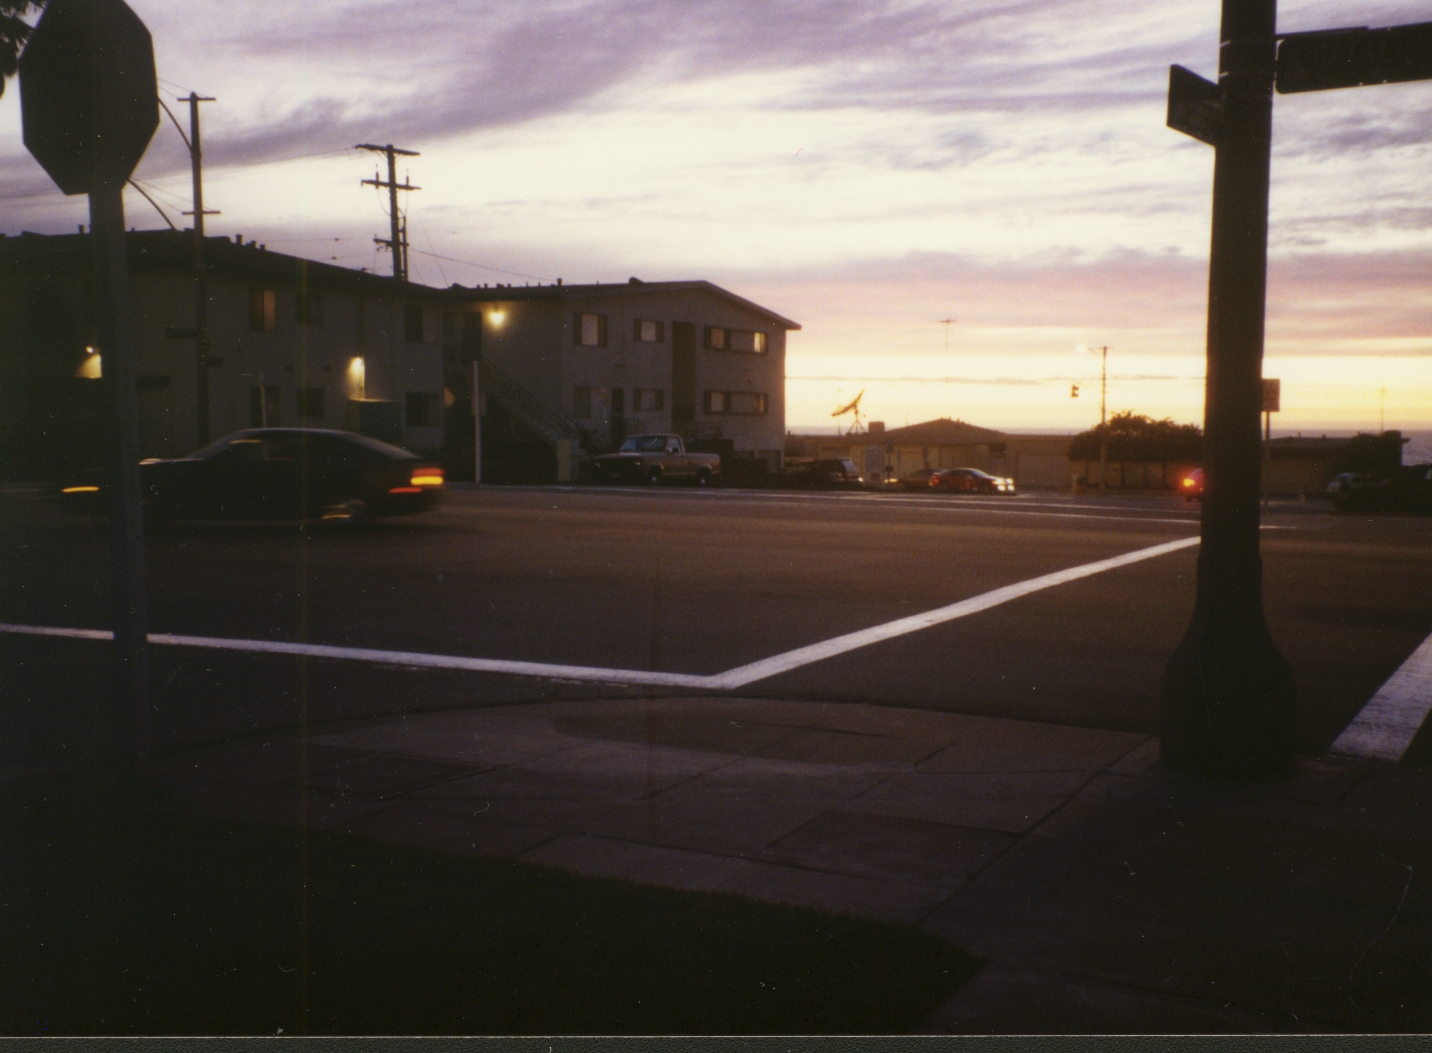 rb-intersection-at-sunset-no-contrastjpg